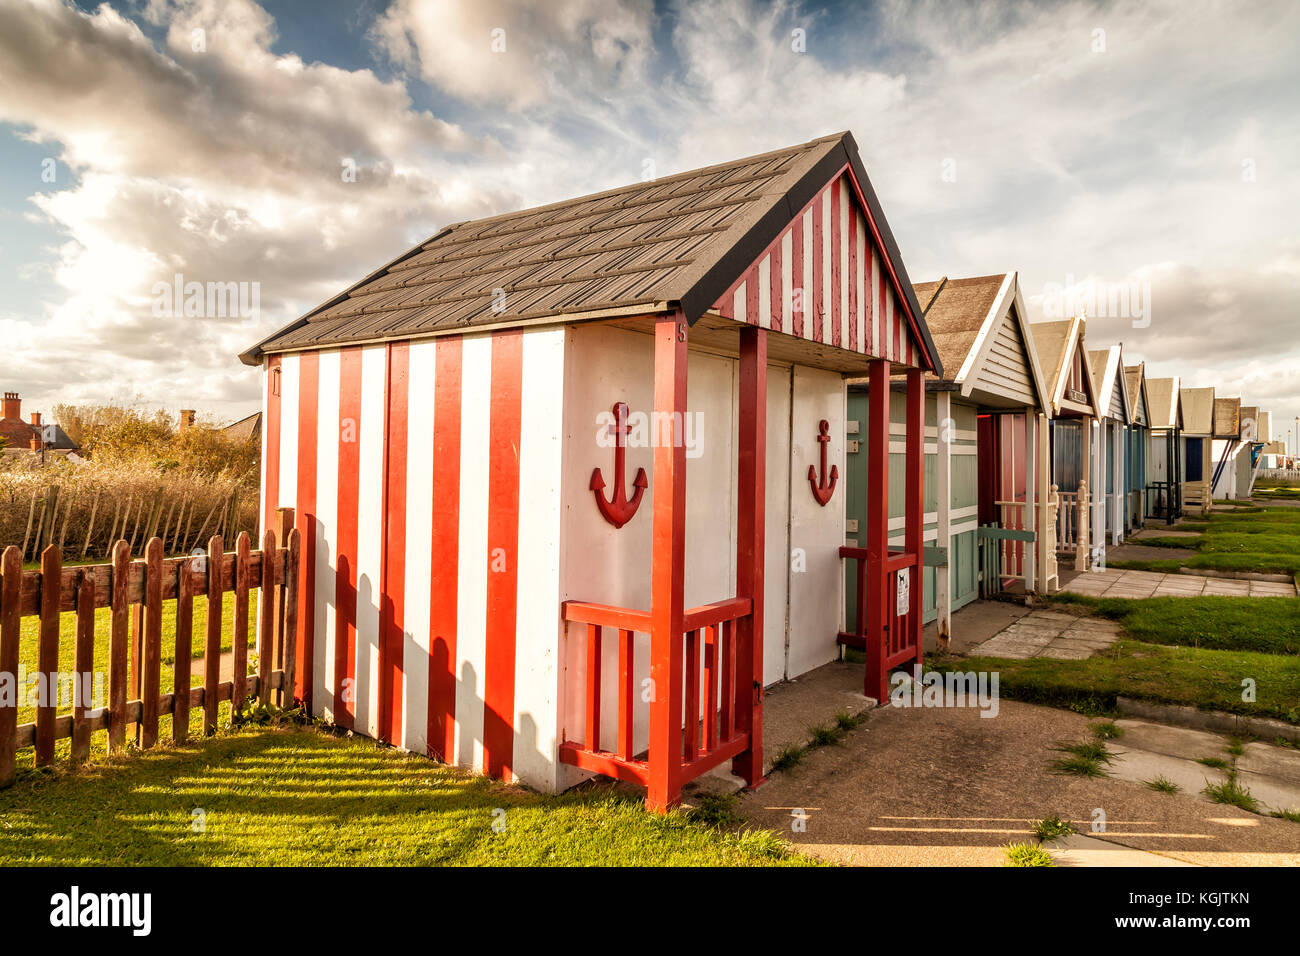 Beach Huts on promenade at Sutton on Sea, east Coast of England October 2017 - Stock Image